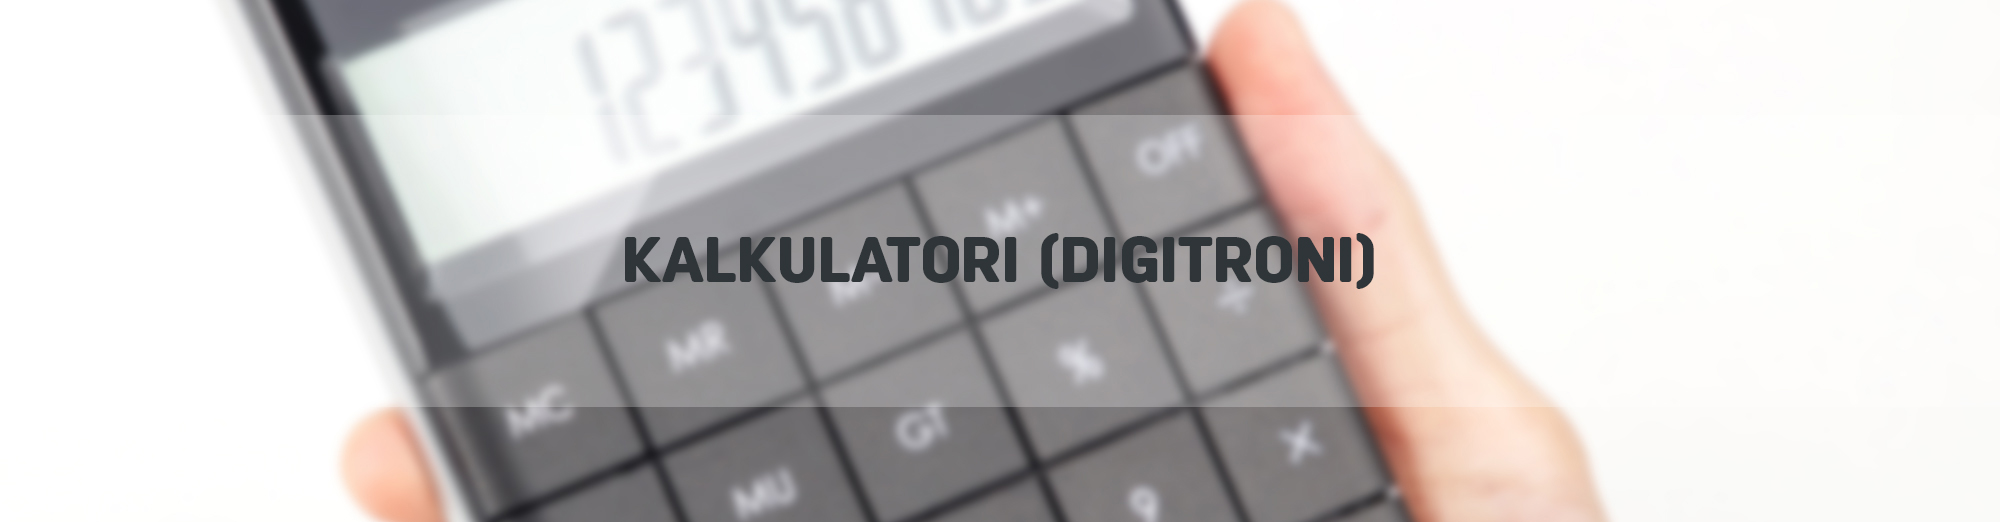 Kalkulatori (digitroni)